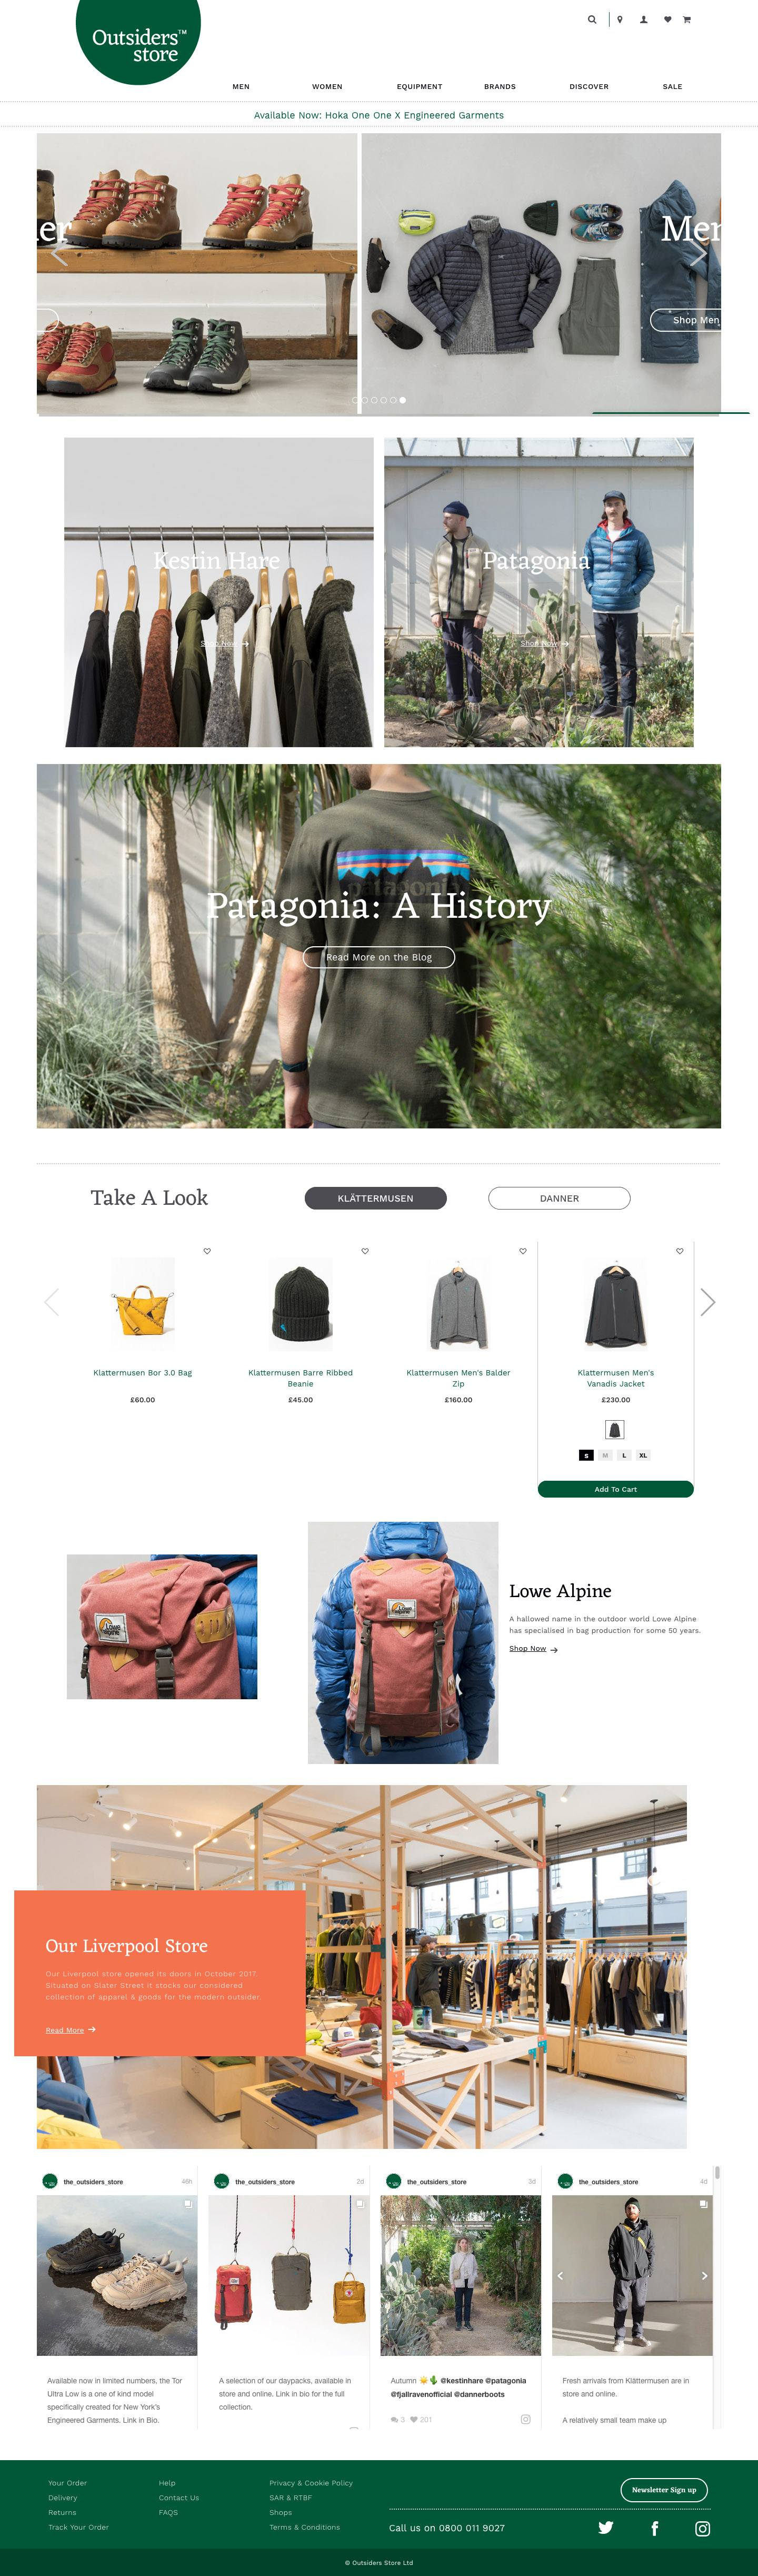 eCommerce website: Outsiders Store